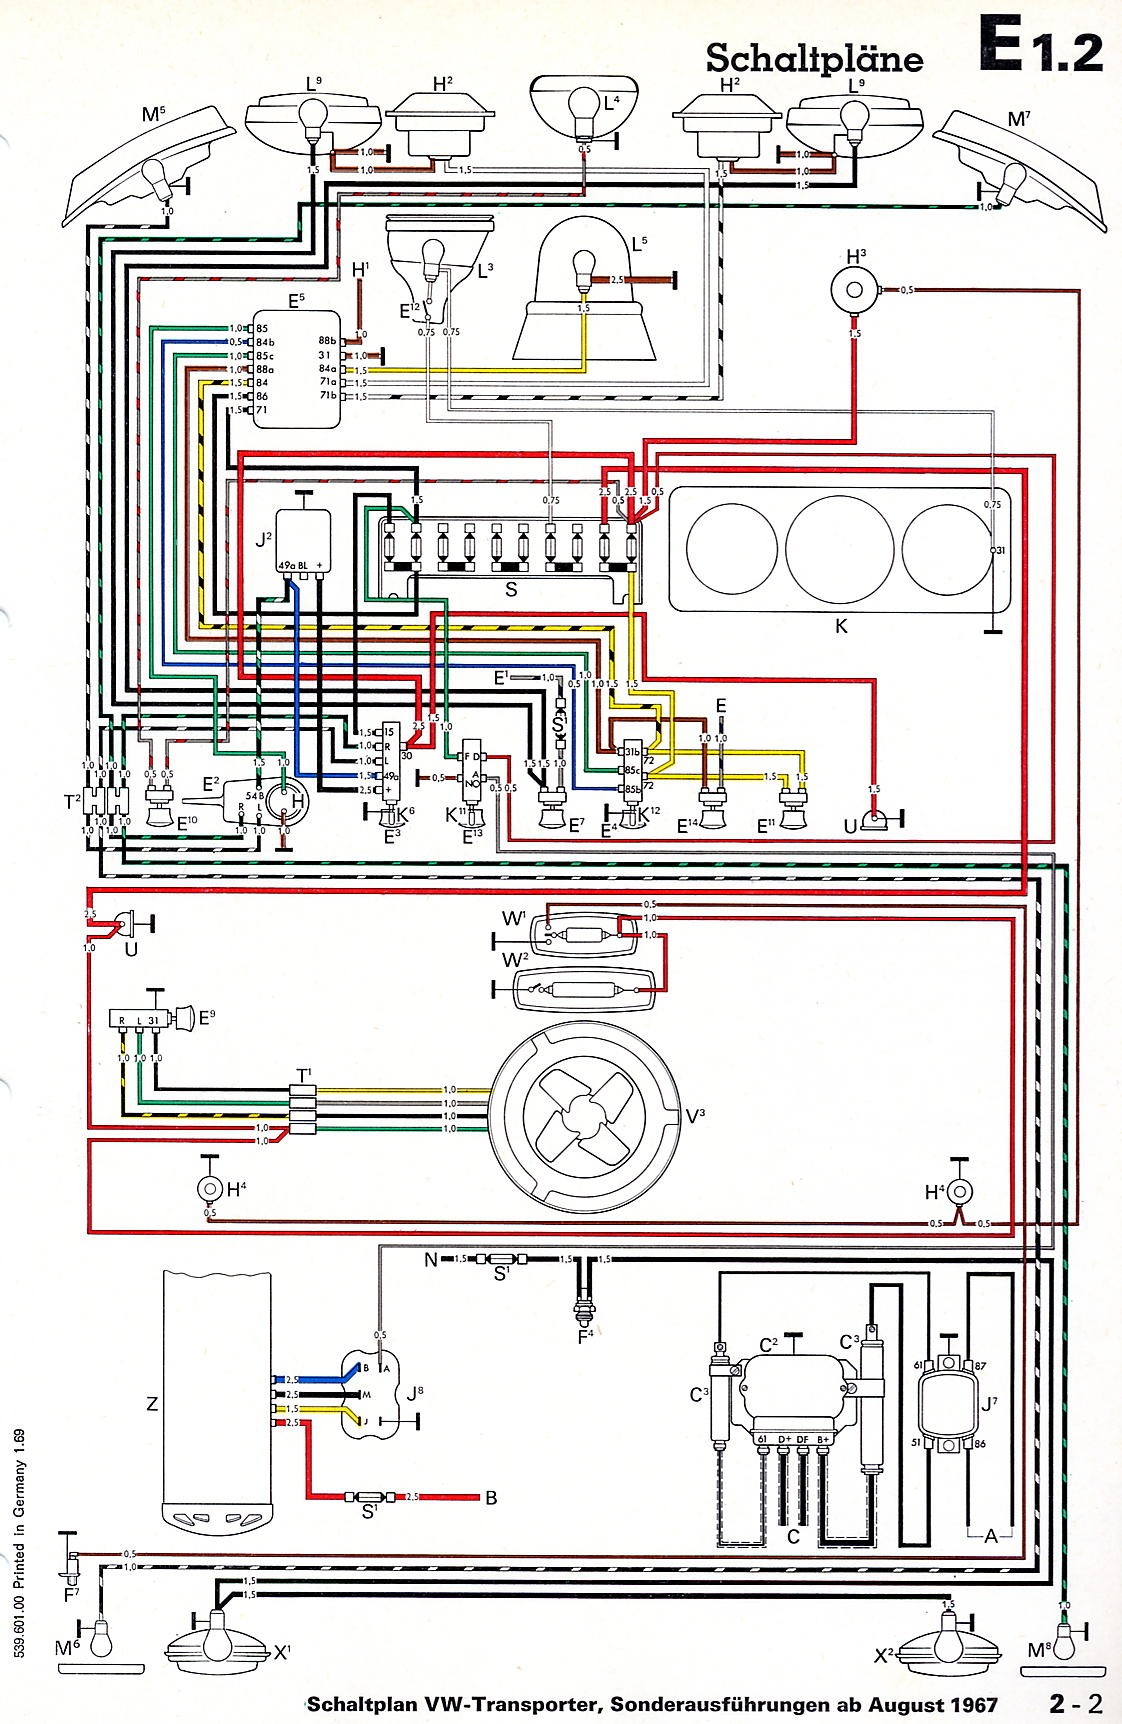 2001 Vw Beetle 2 0 Engine Diagram My Wiring Volkswagen Bus Furthermore In Rh Dasdes Co